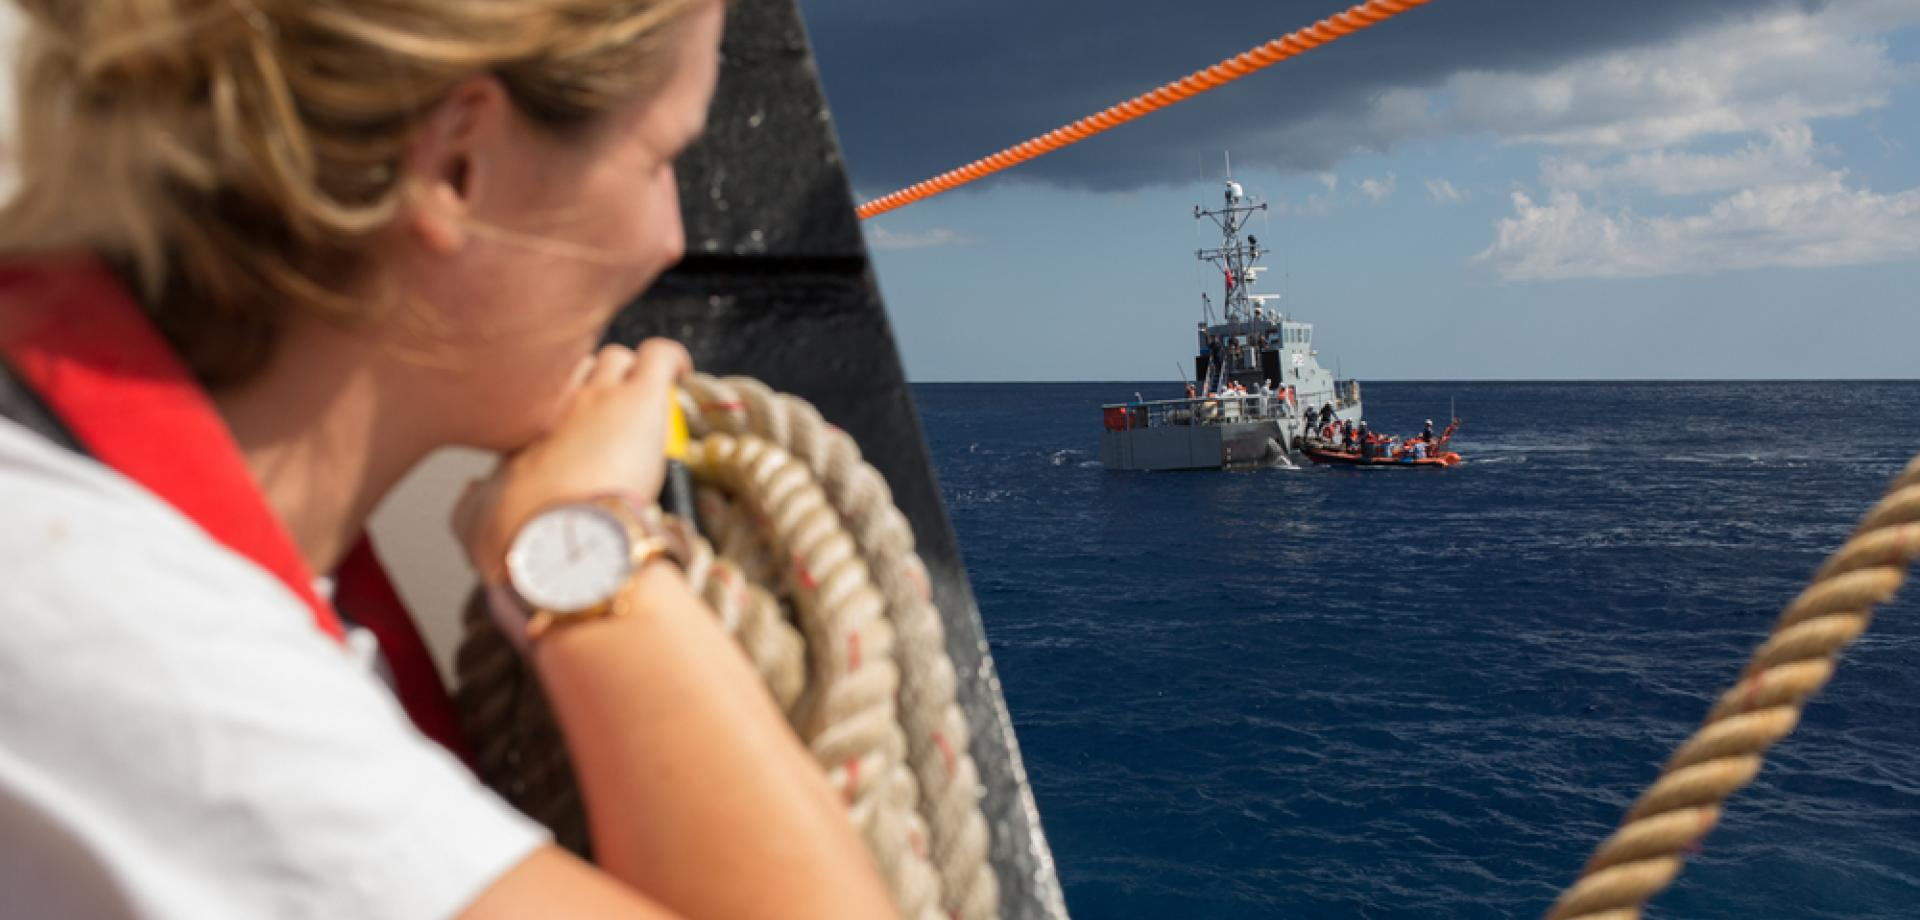 MSF nurse Catherine Flanigan watches on as survivors are transferred from Aquarius to Maltese authorities